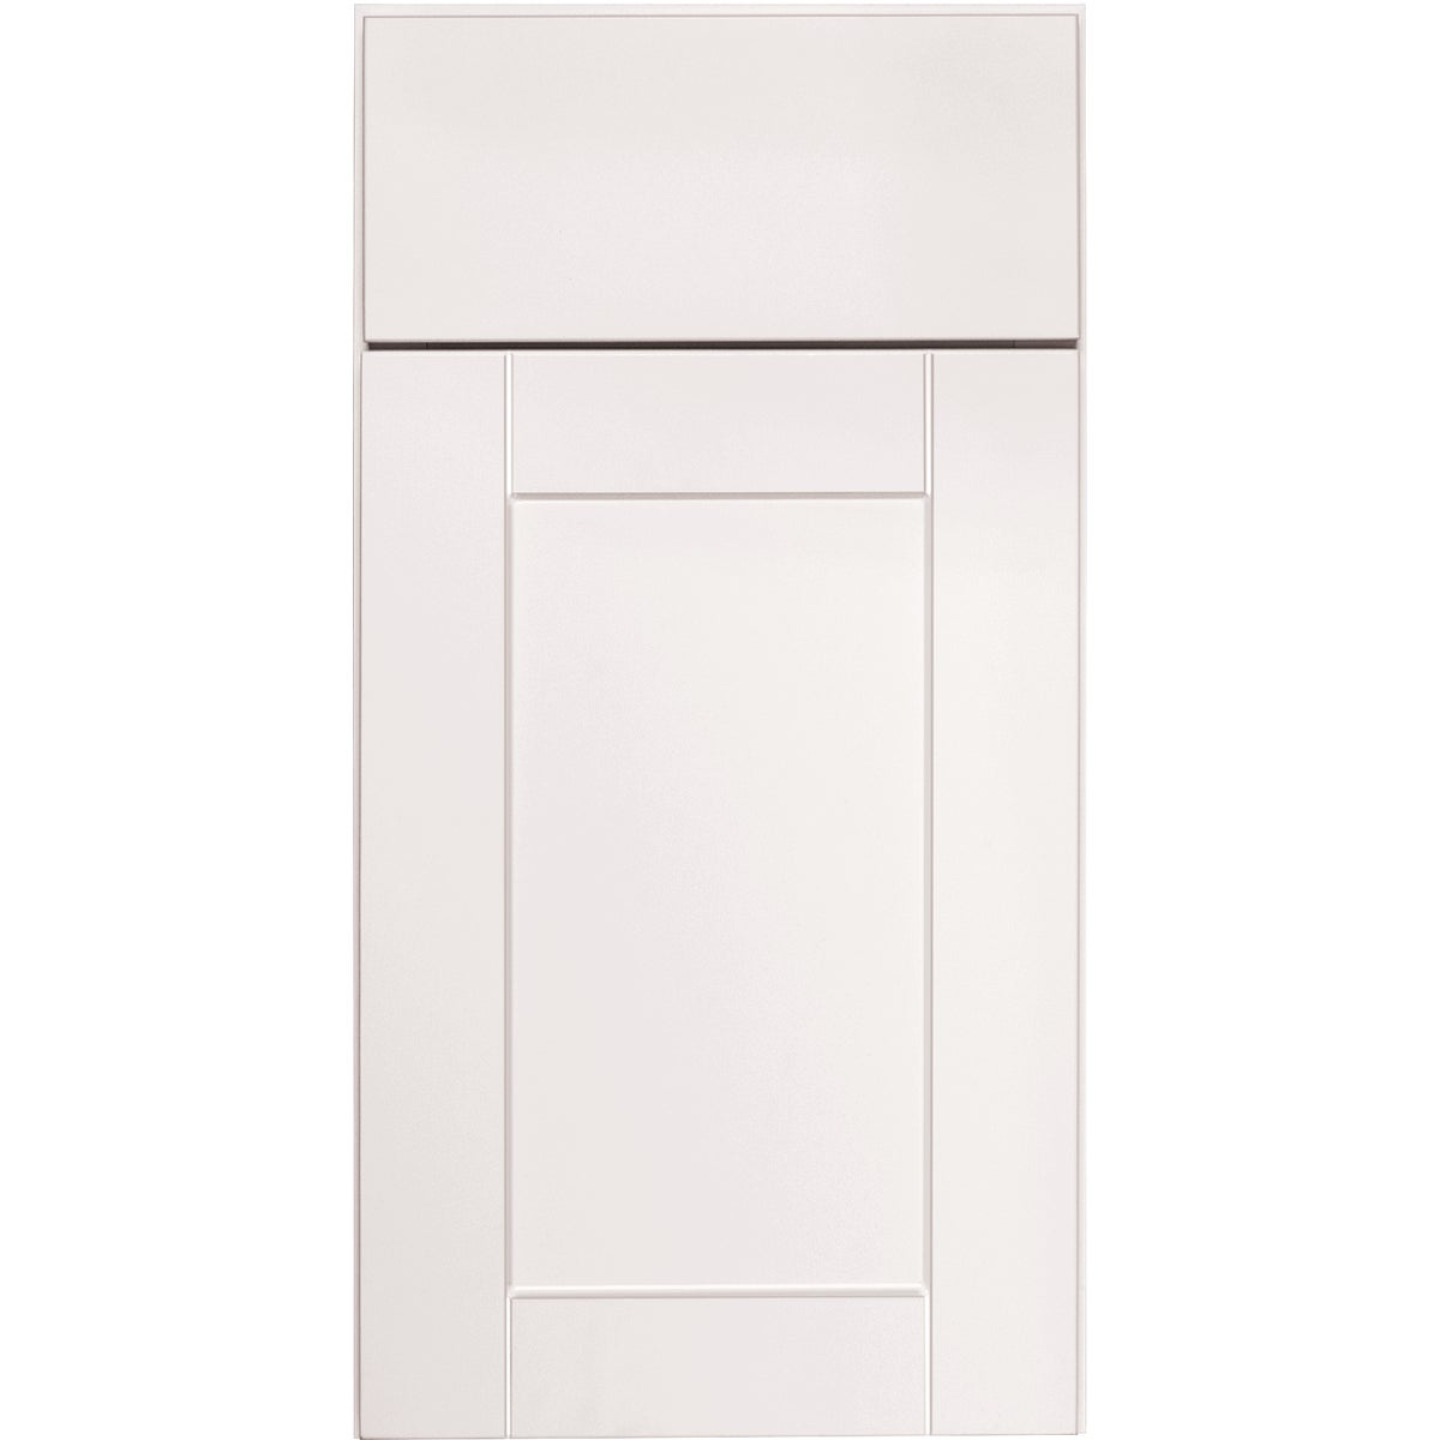 Continental Cabinets Andover Shaker 30 In. W x 34-1/2 In. H x 21 In. D White Vanity Base, 2 Door Image 3